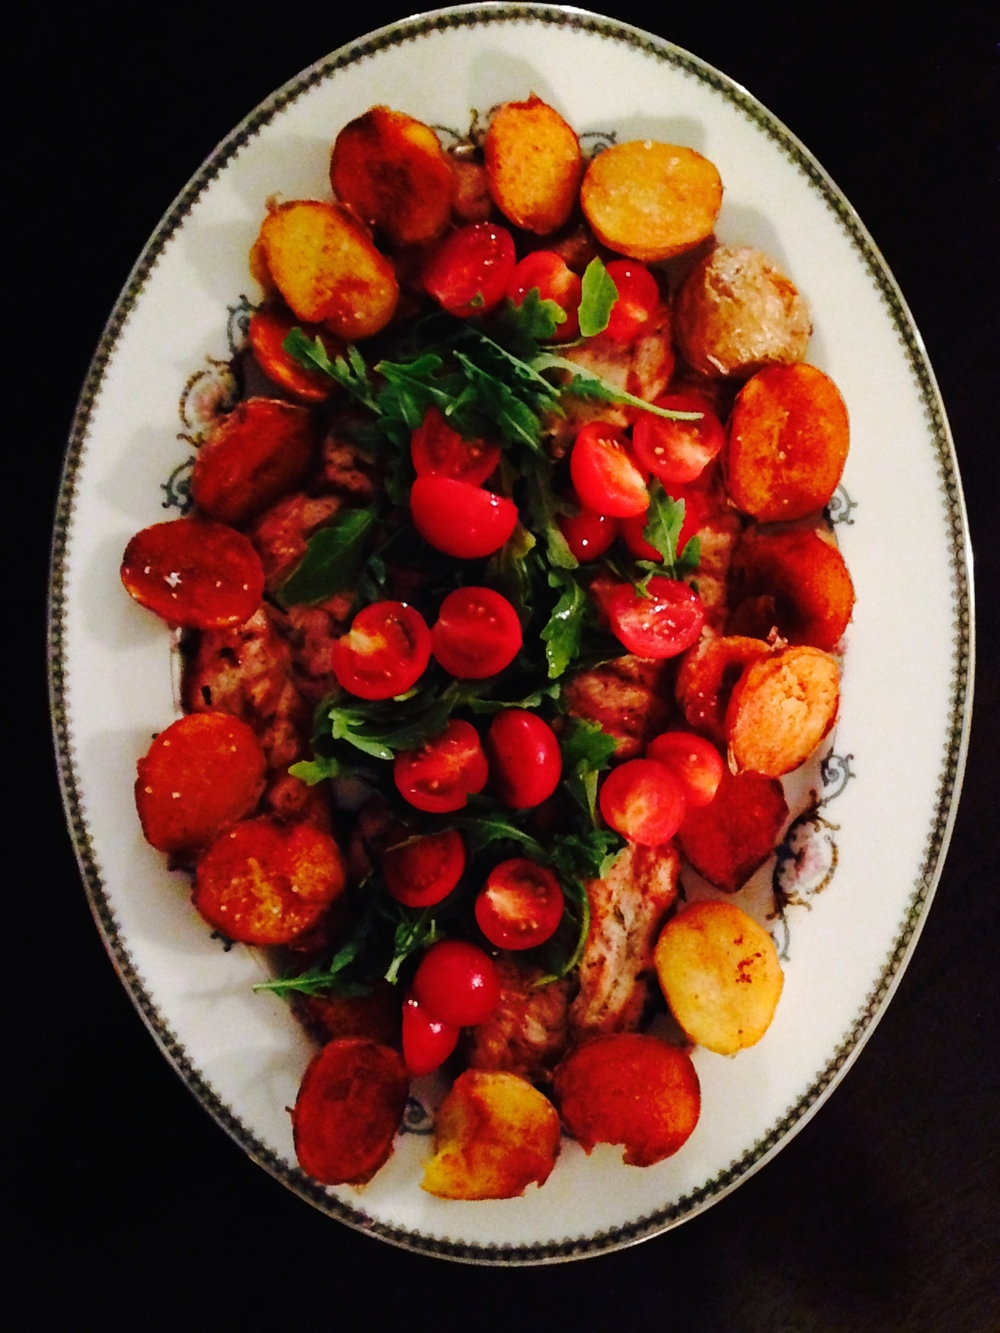 Paillards dressed with fried potatoes, arugula and marinated tomatoes.  Chilled Beaujolais, anyone?